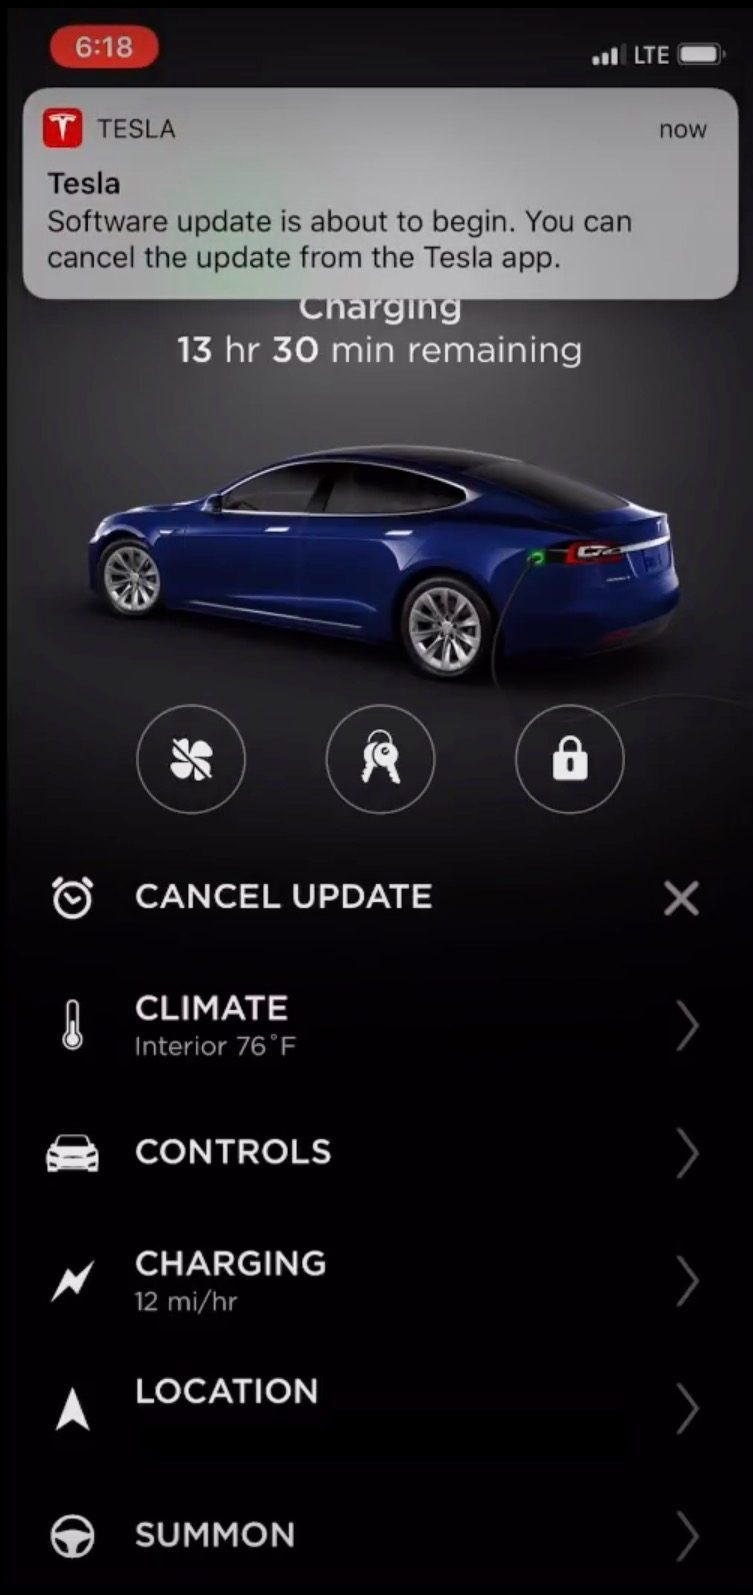 Tesla's new mobile app update lets you get more control over